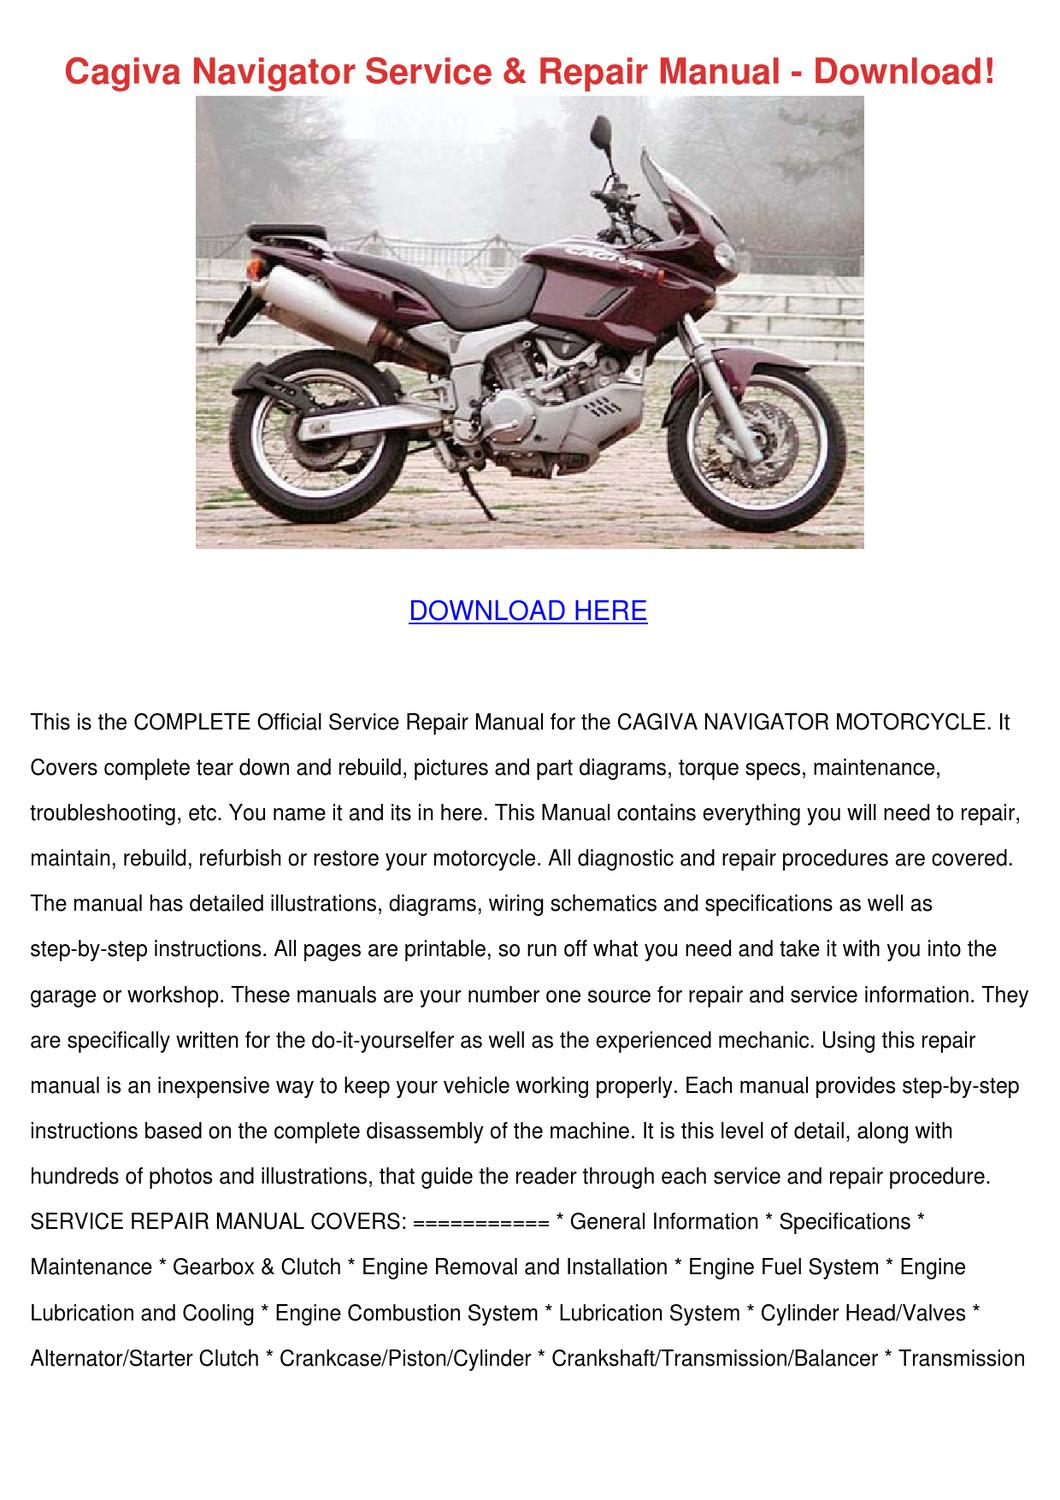 Cagiva Navigator Service Repair Manual Downlo by JefferyGoodrich - issuu